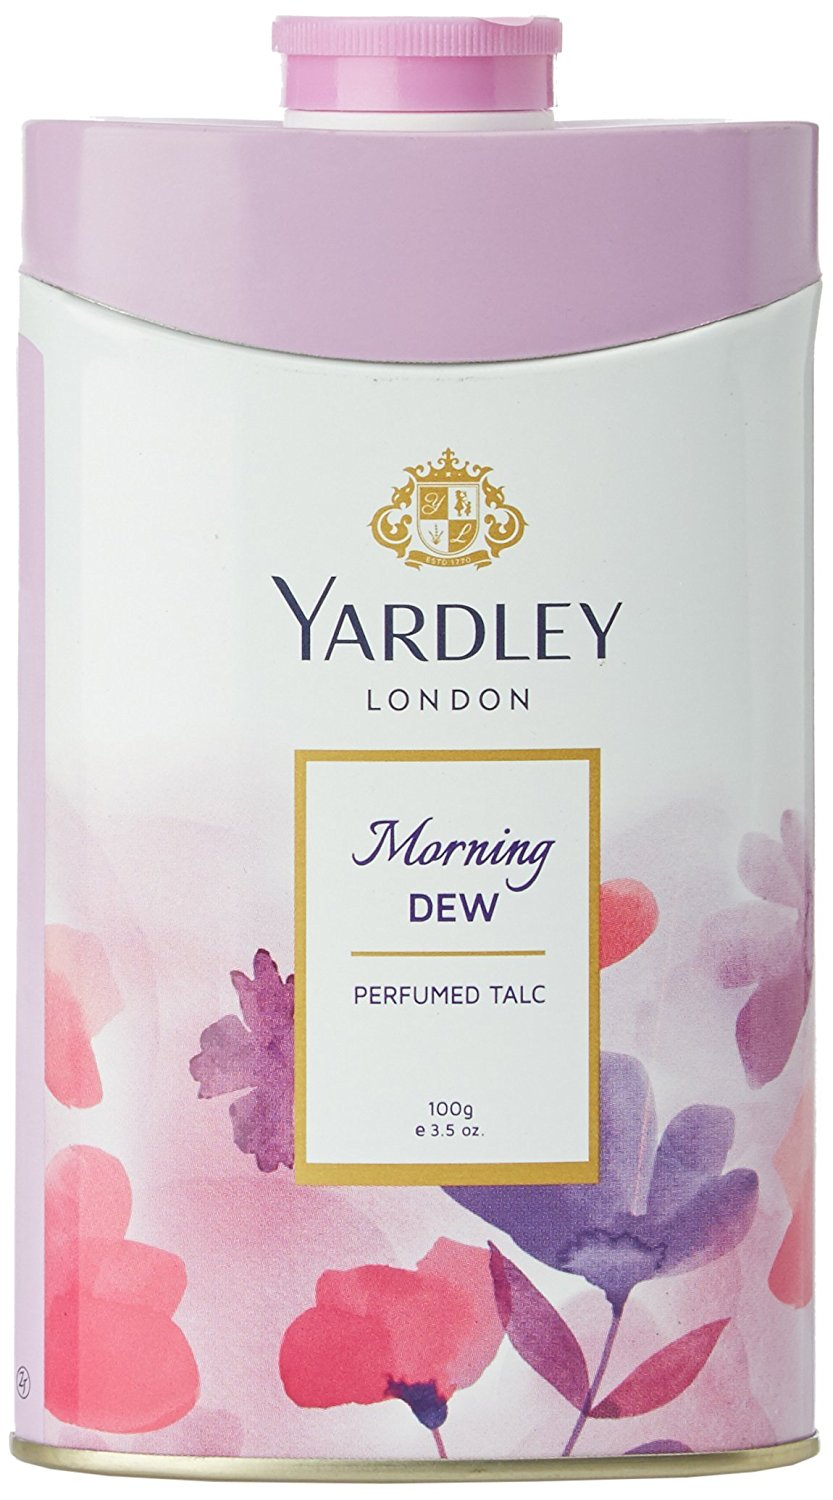 Buy Yardley London - Morning Dew Perfumed Talc for Women Online MY